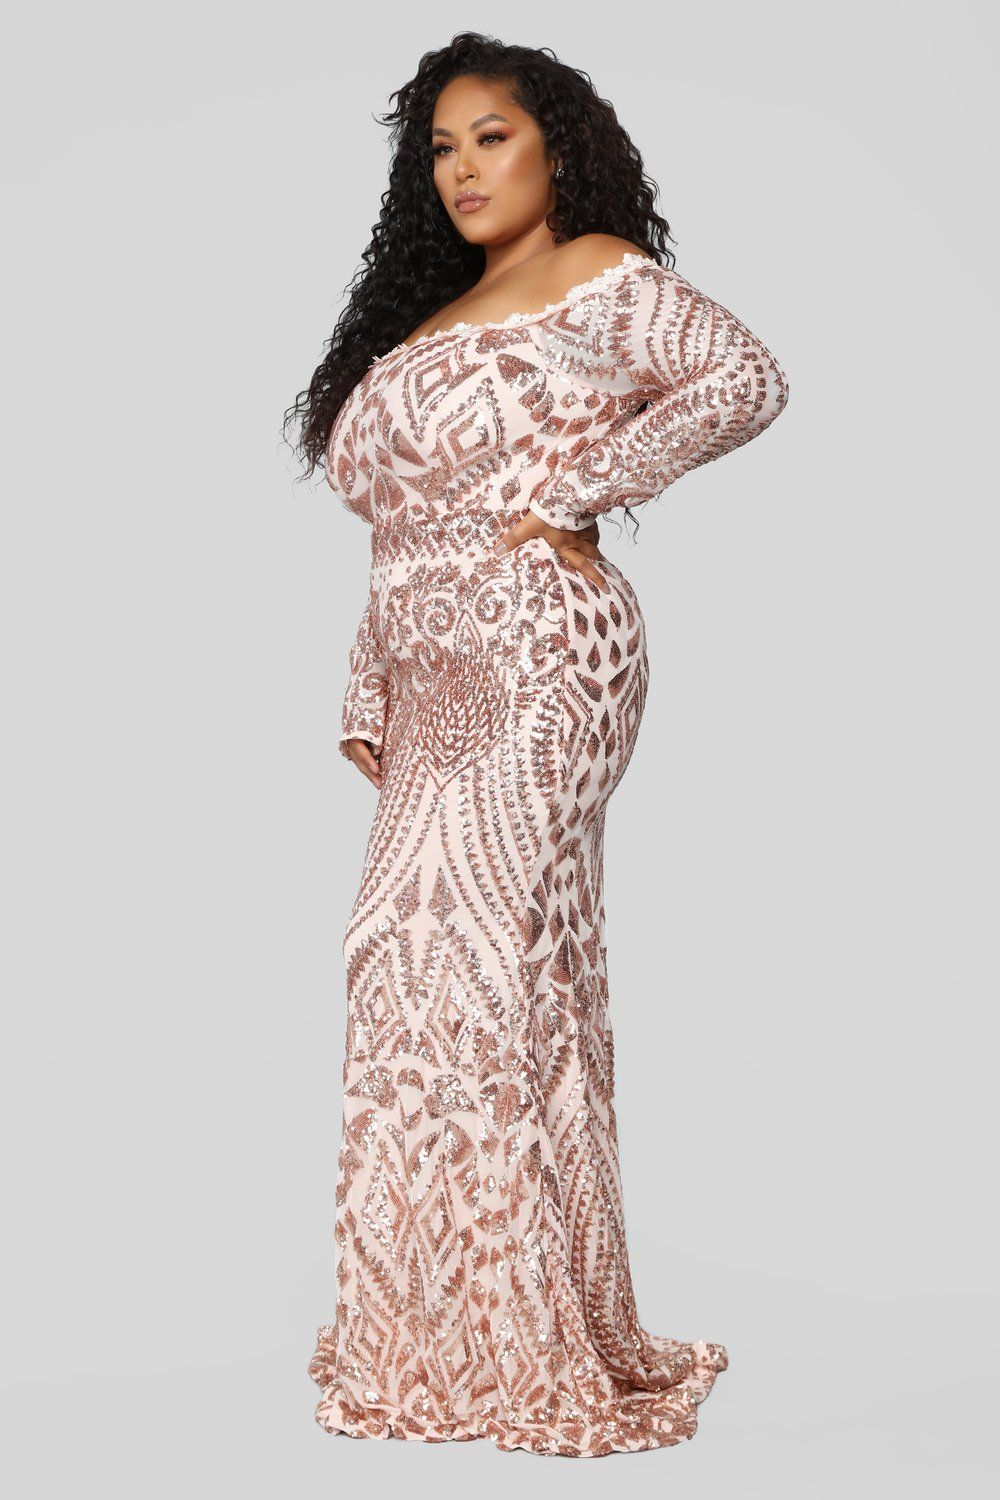 Chloe RoseGold Sequin Dress - RoseGold | Phat | Sequin dress ...